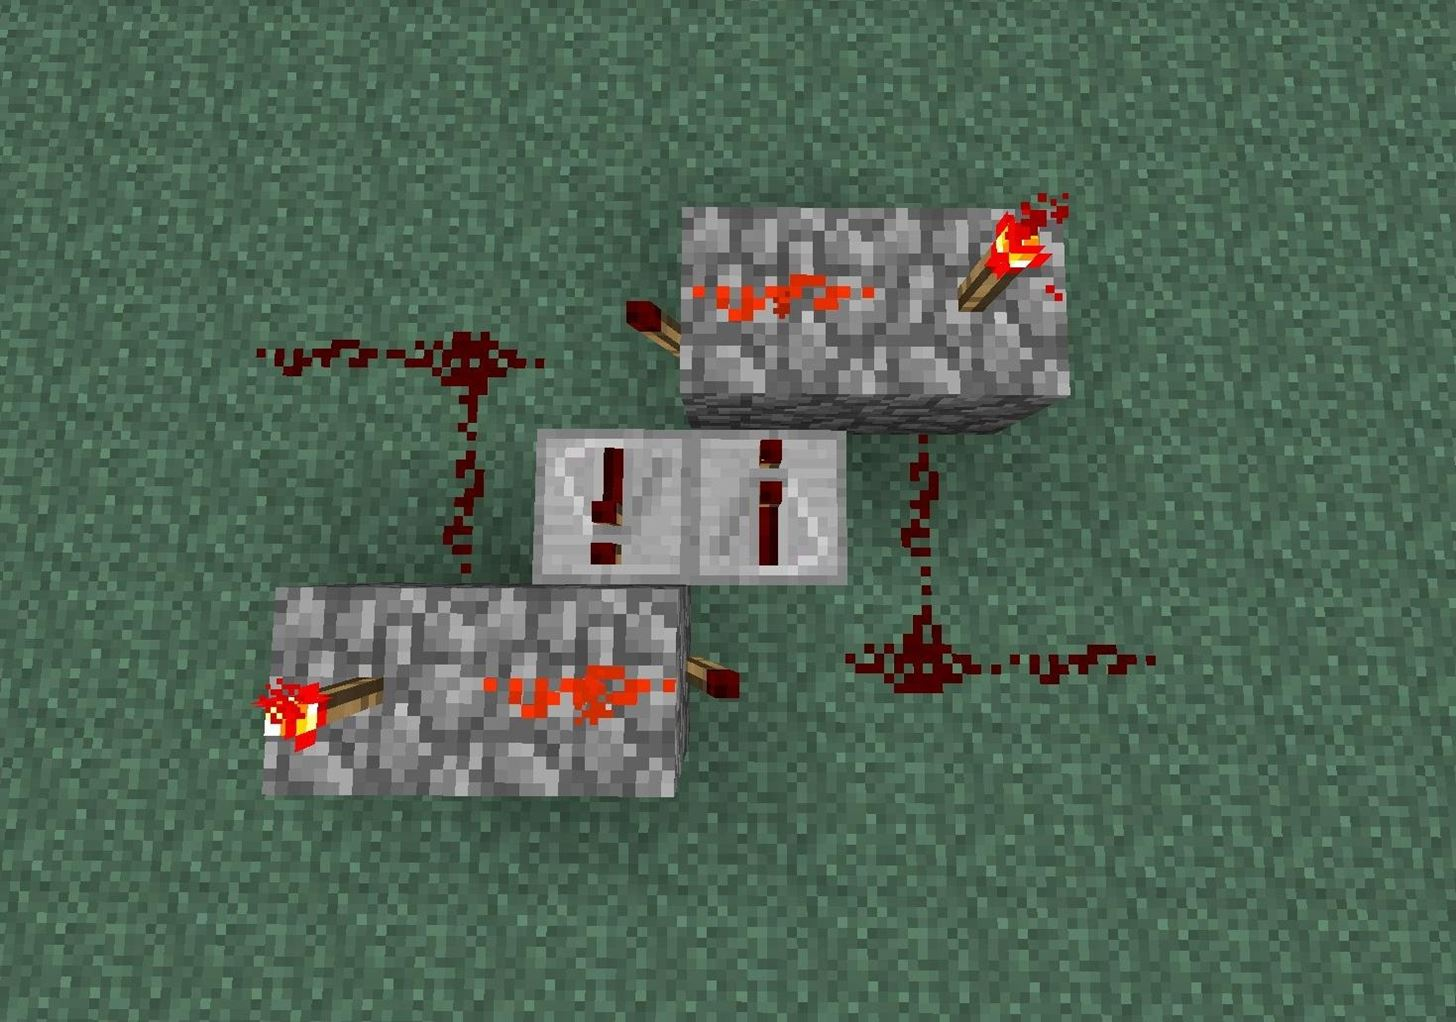 How To Make A Redstone Repeating Circuit And Make It Continuous